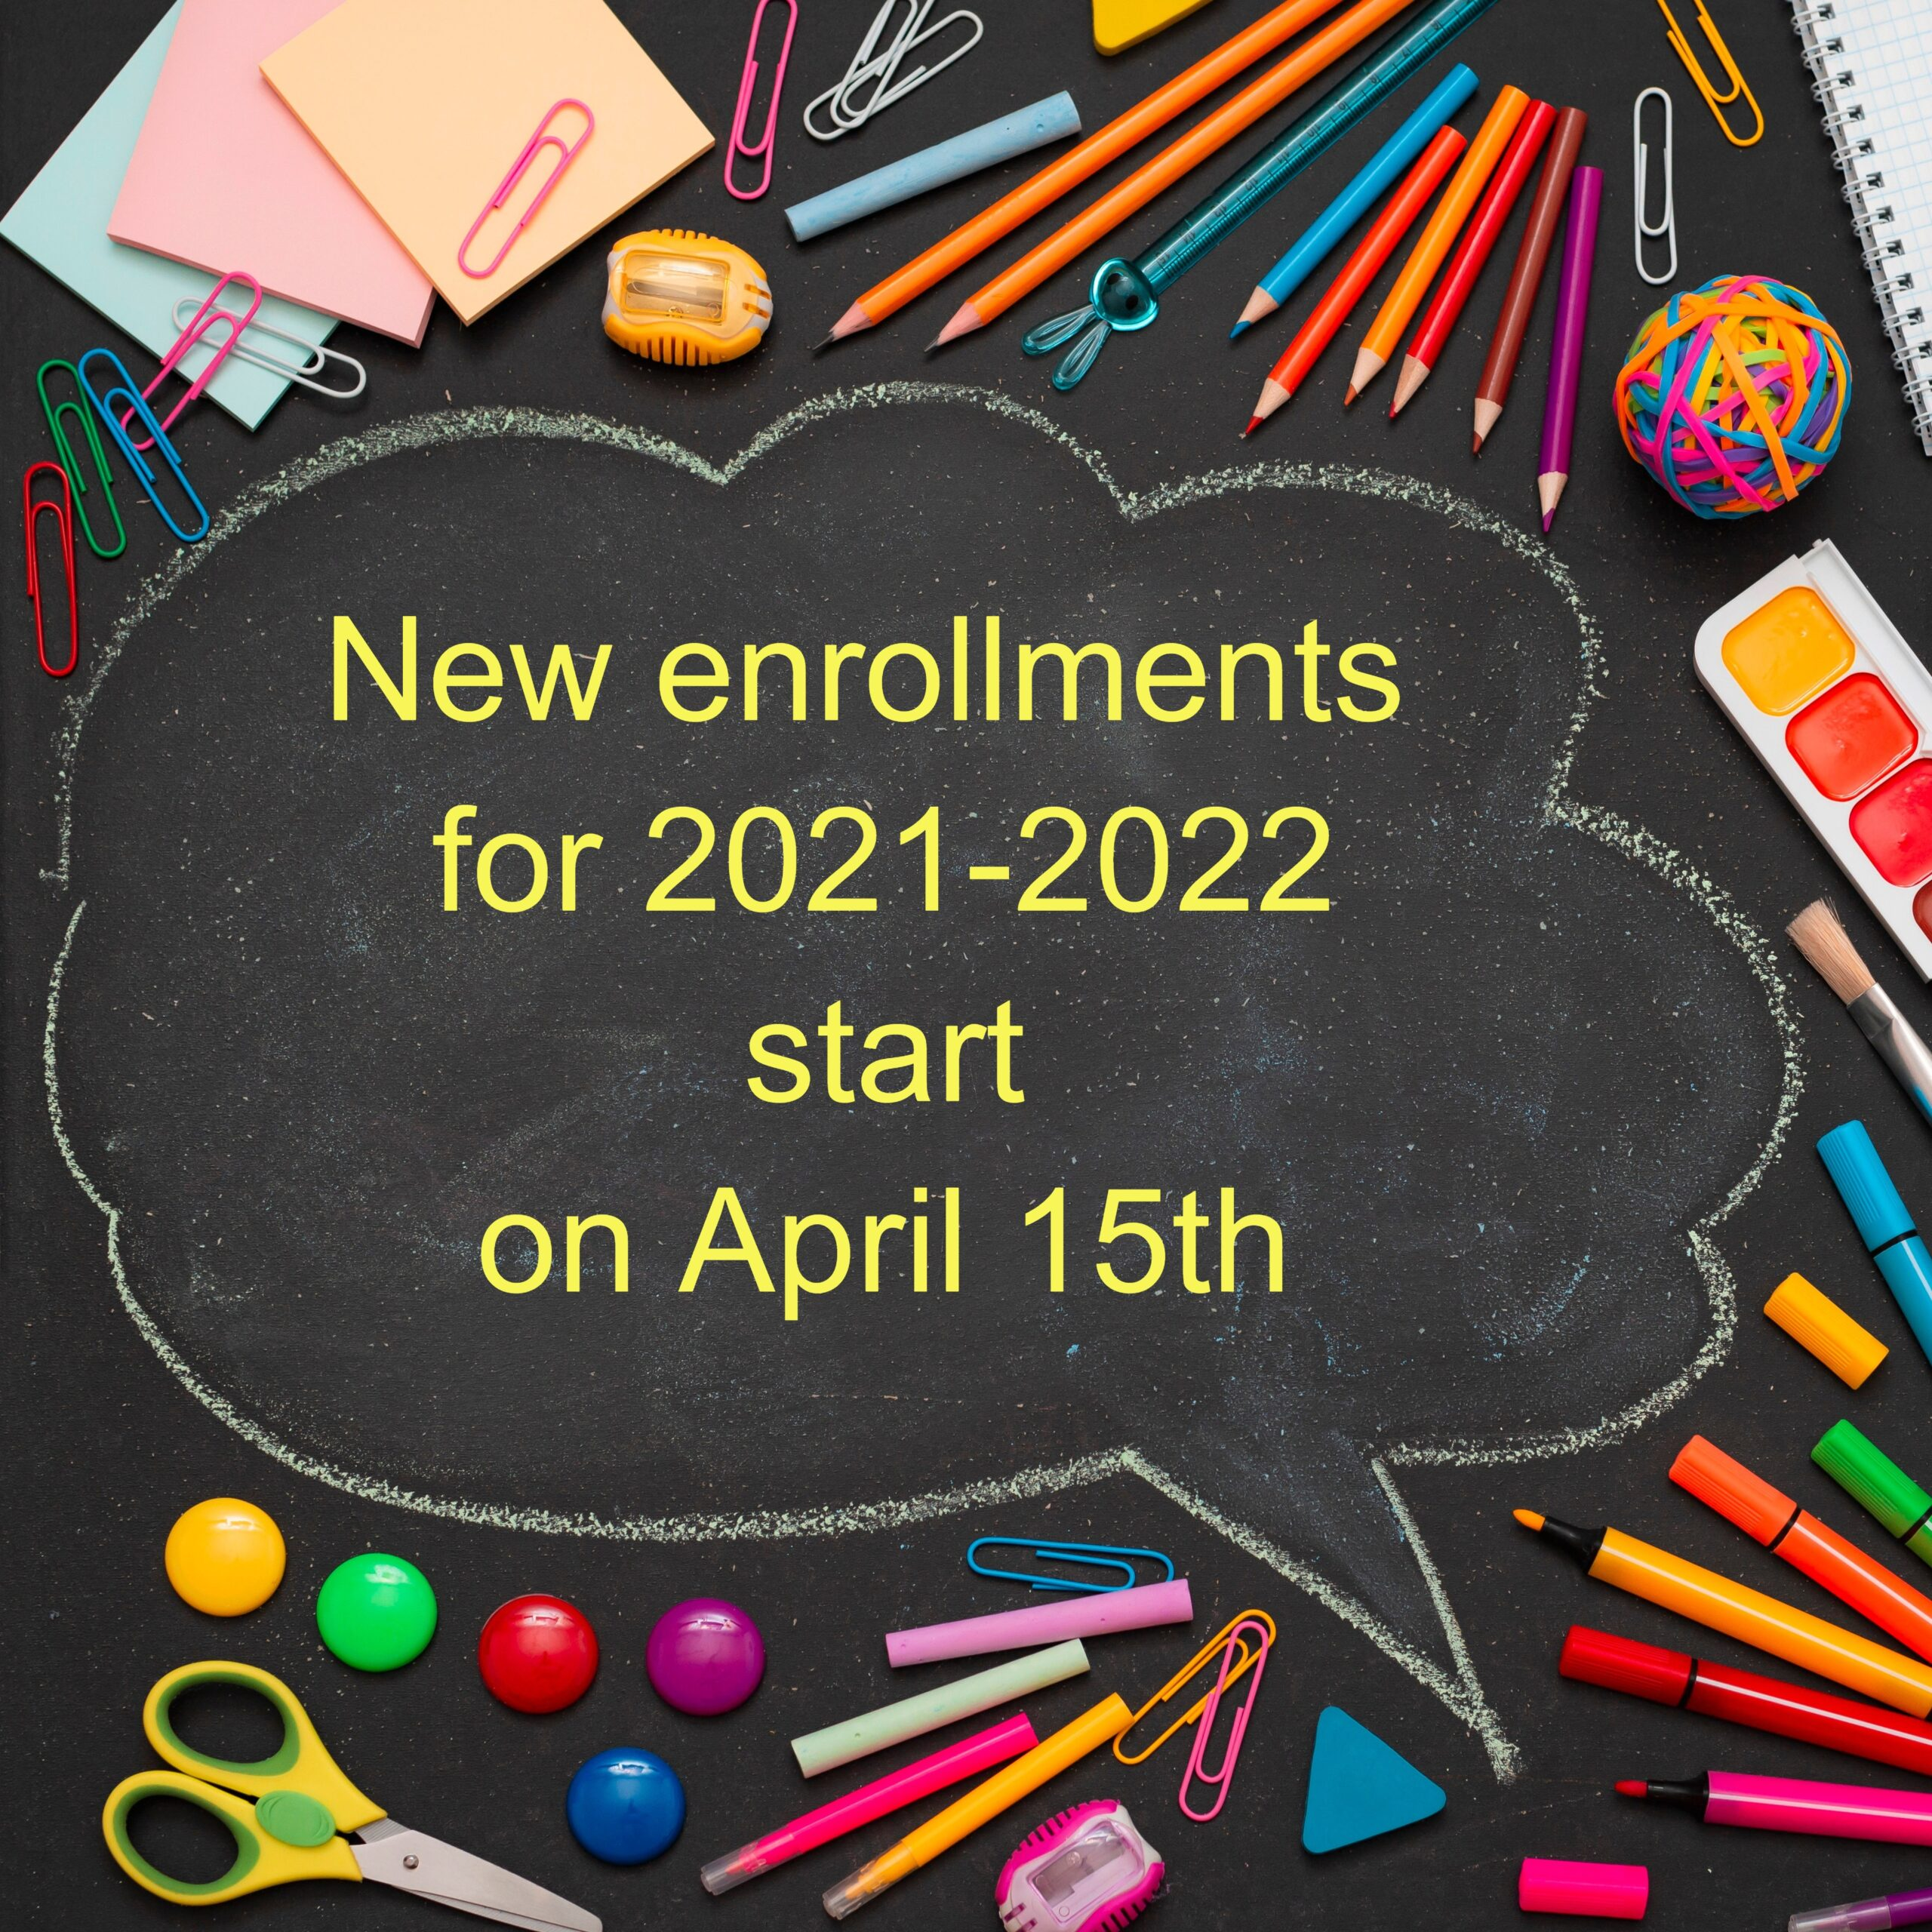 new enrollments